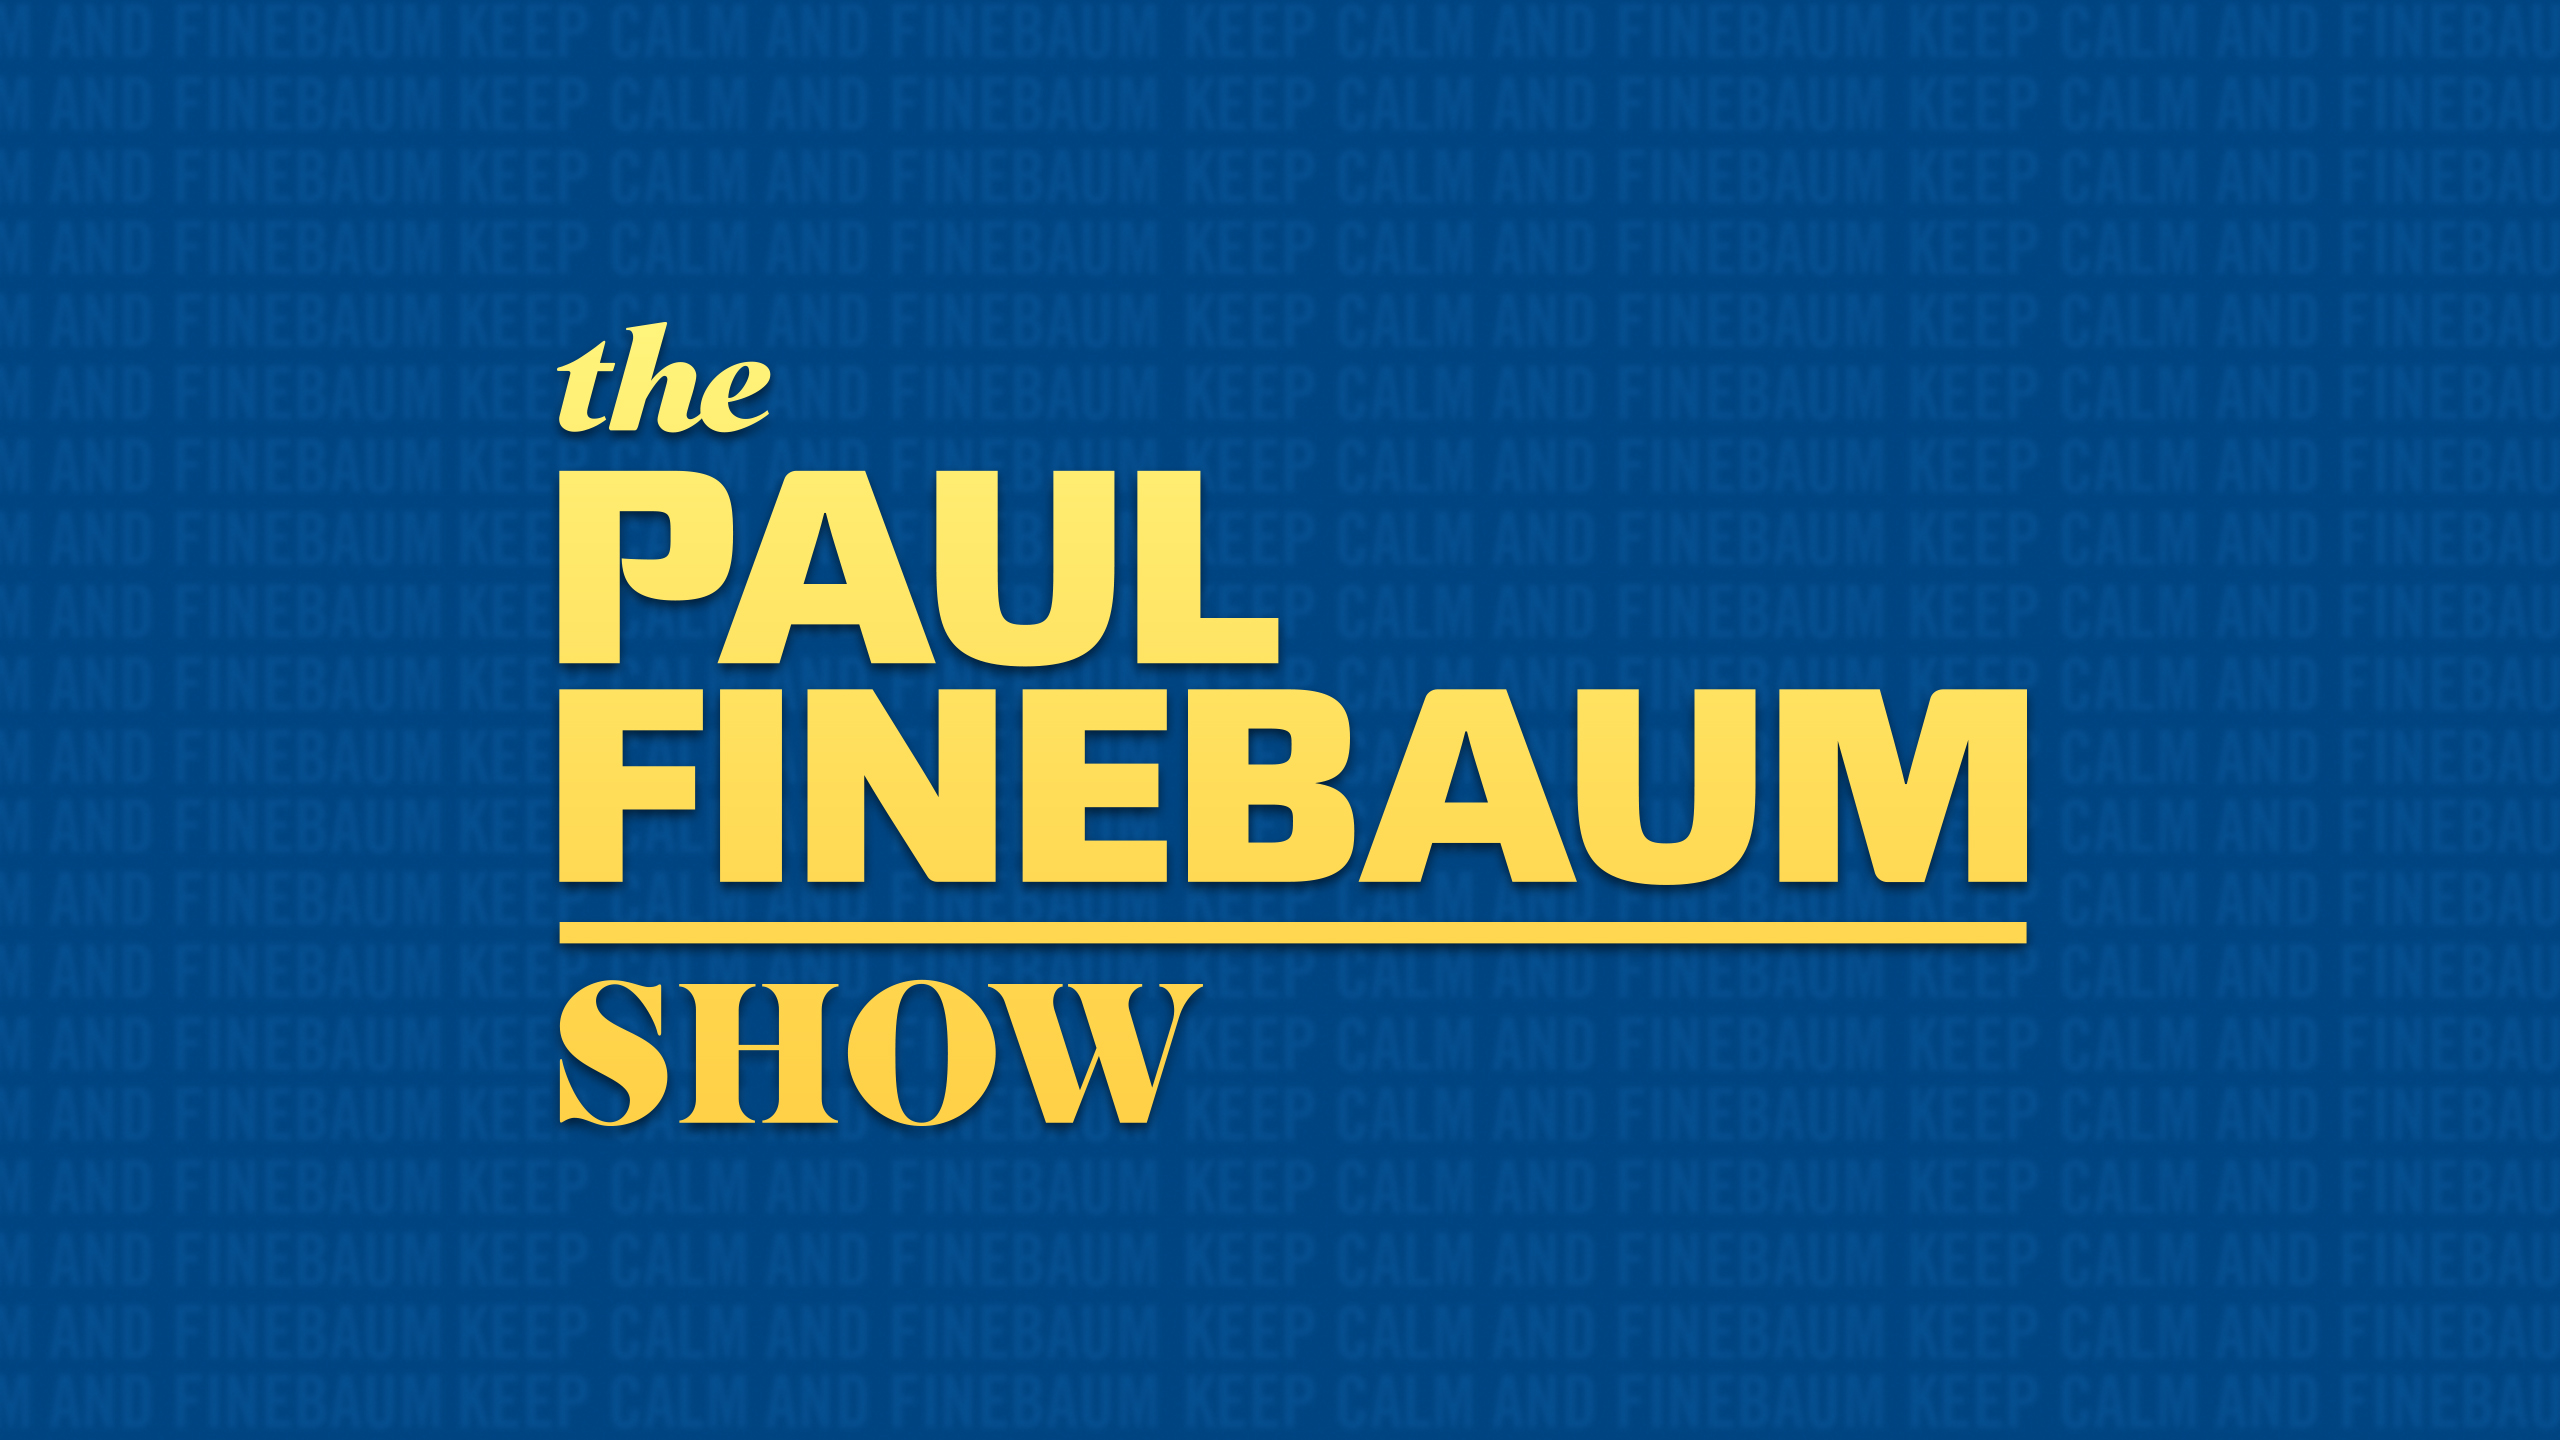 Fri, 2/22 - The Paul Finebaum Show